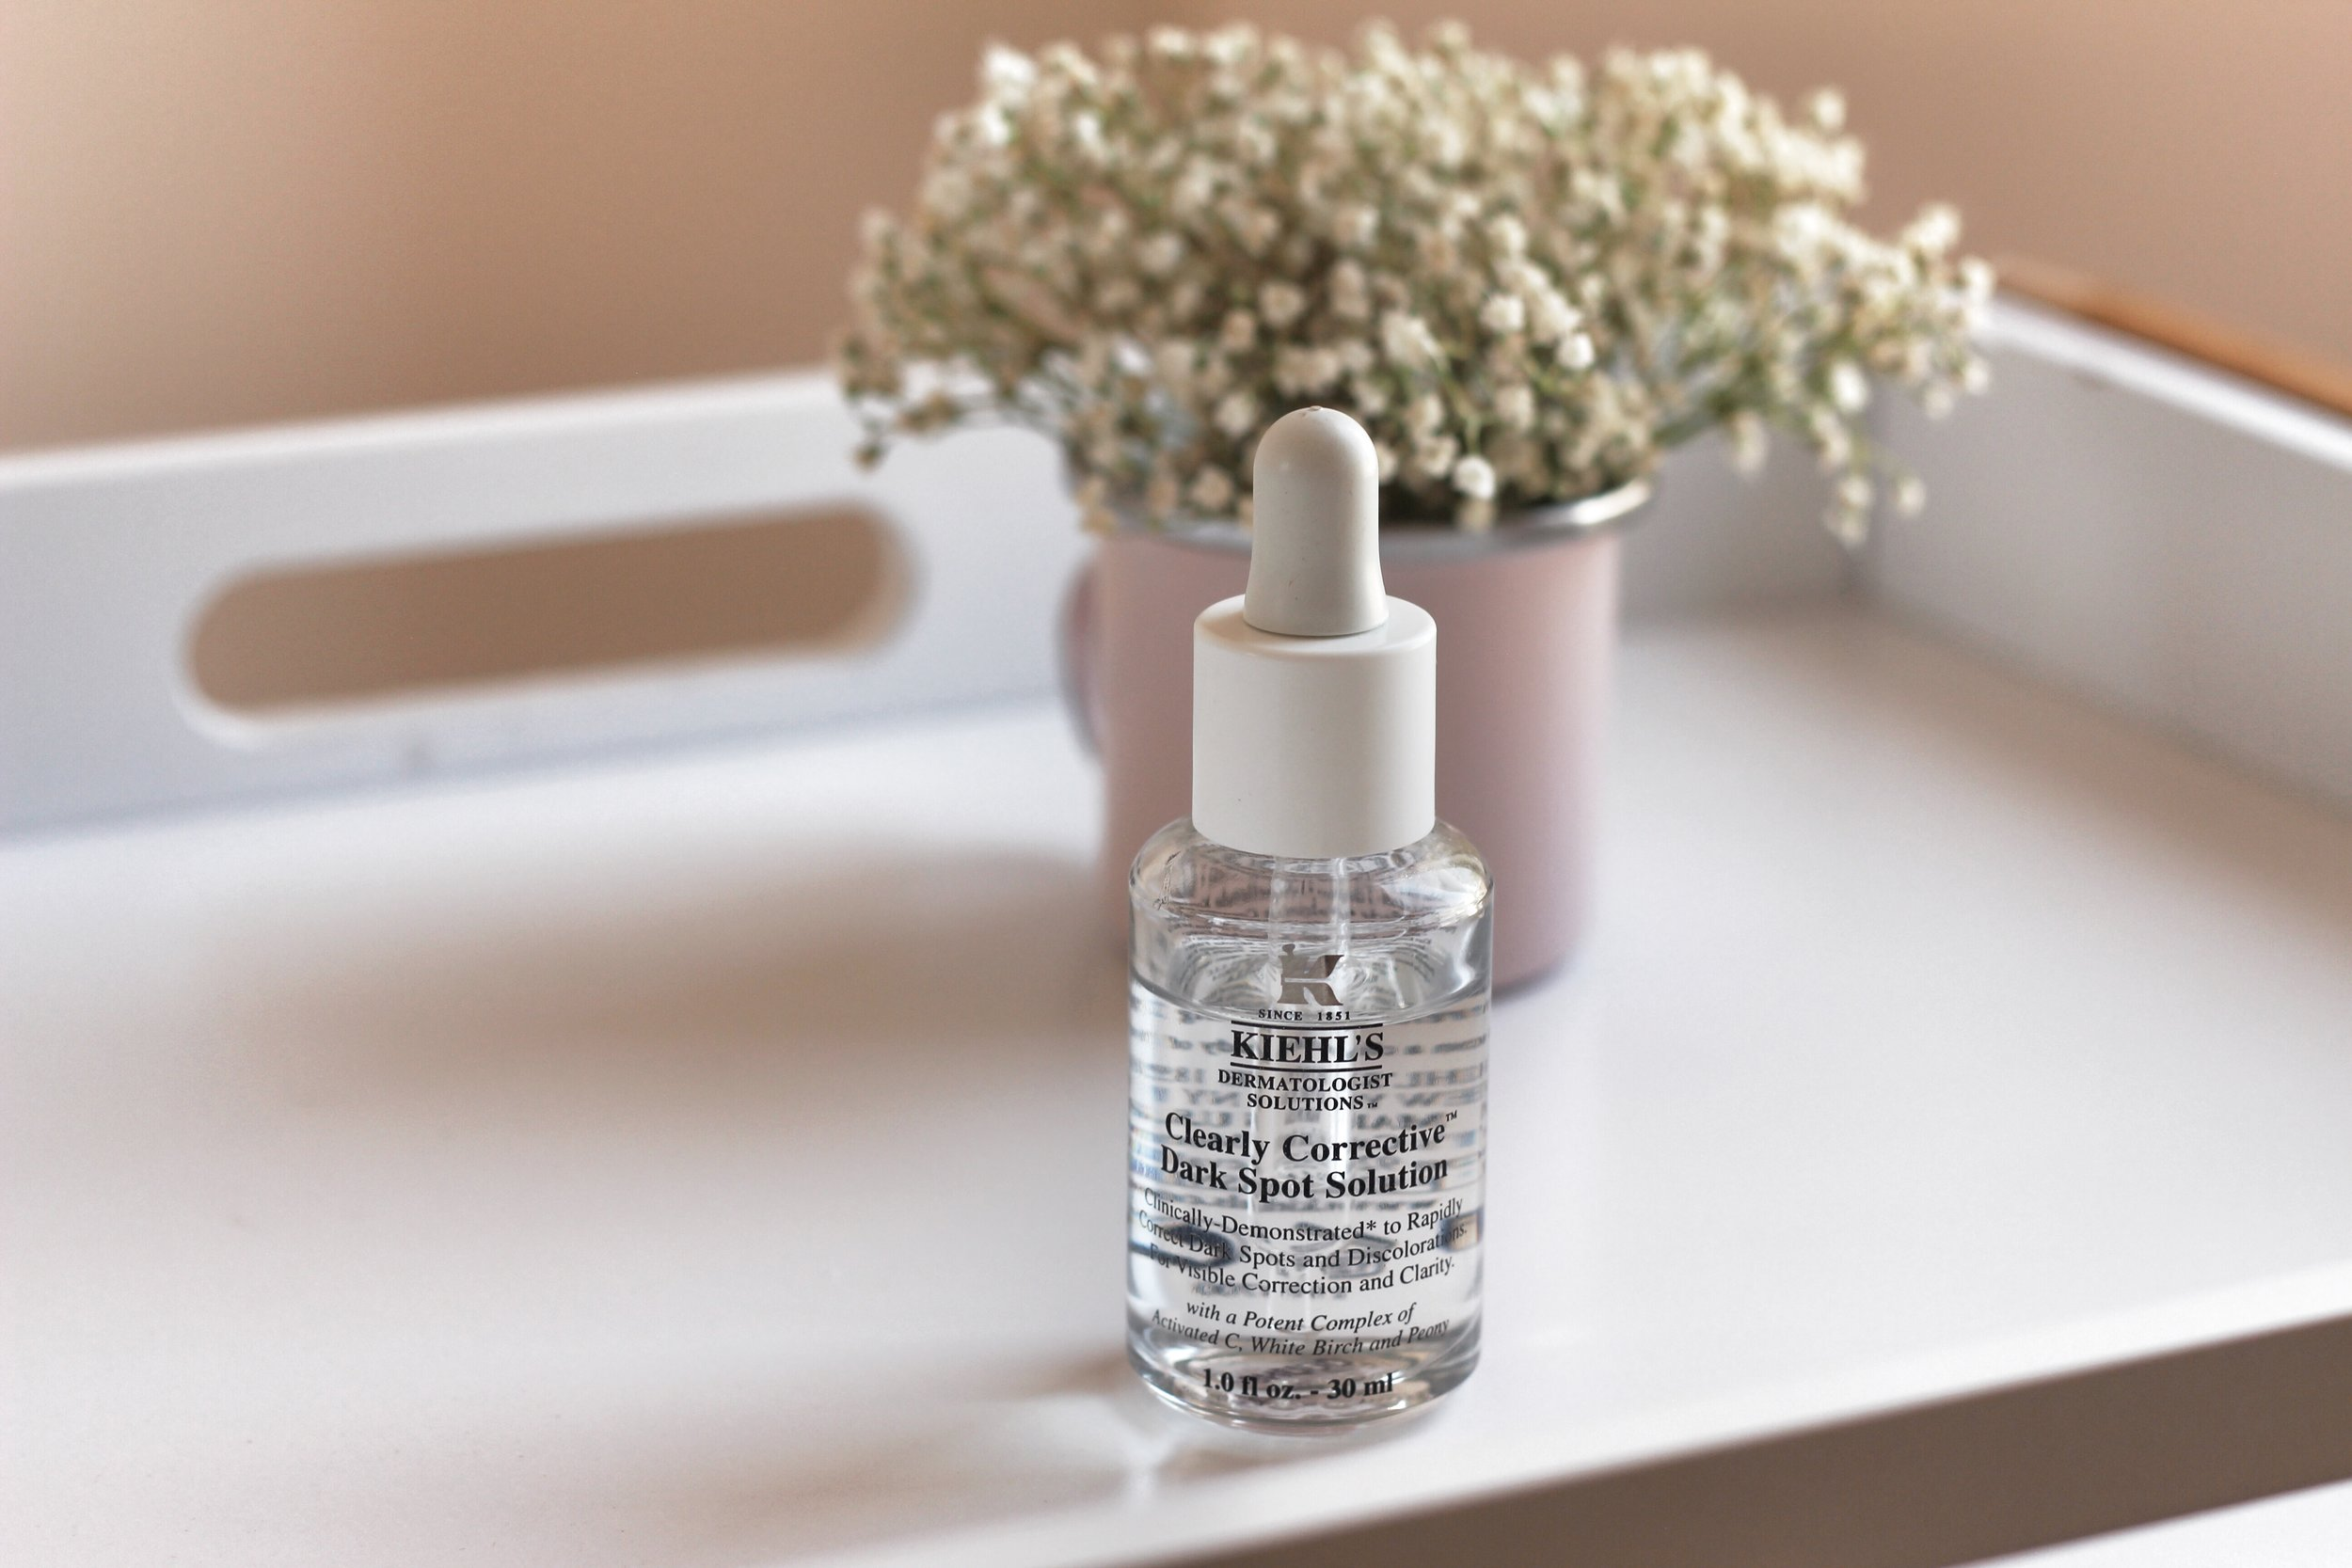 kiehl's clearly corrective dark spot solution.jpg